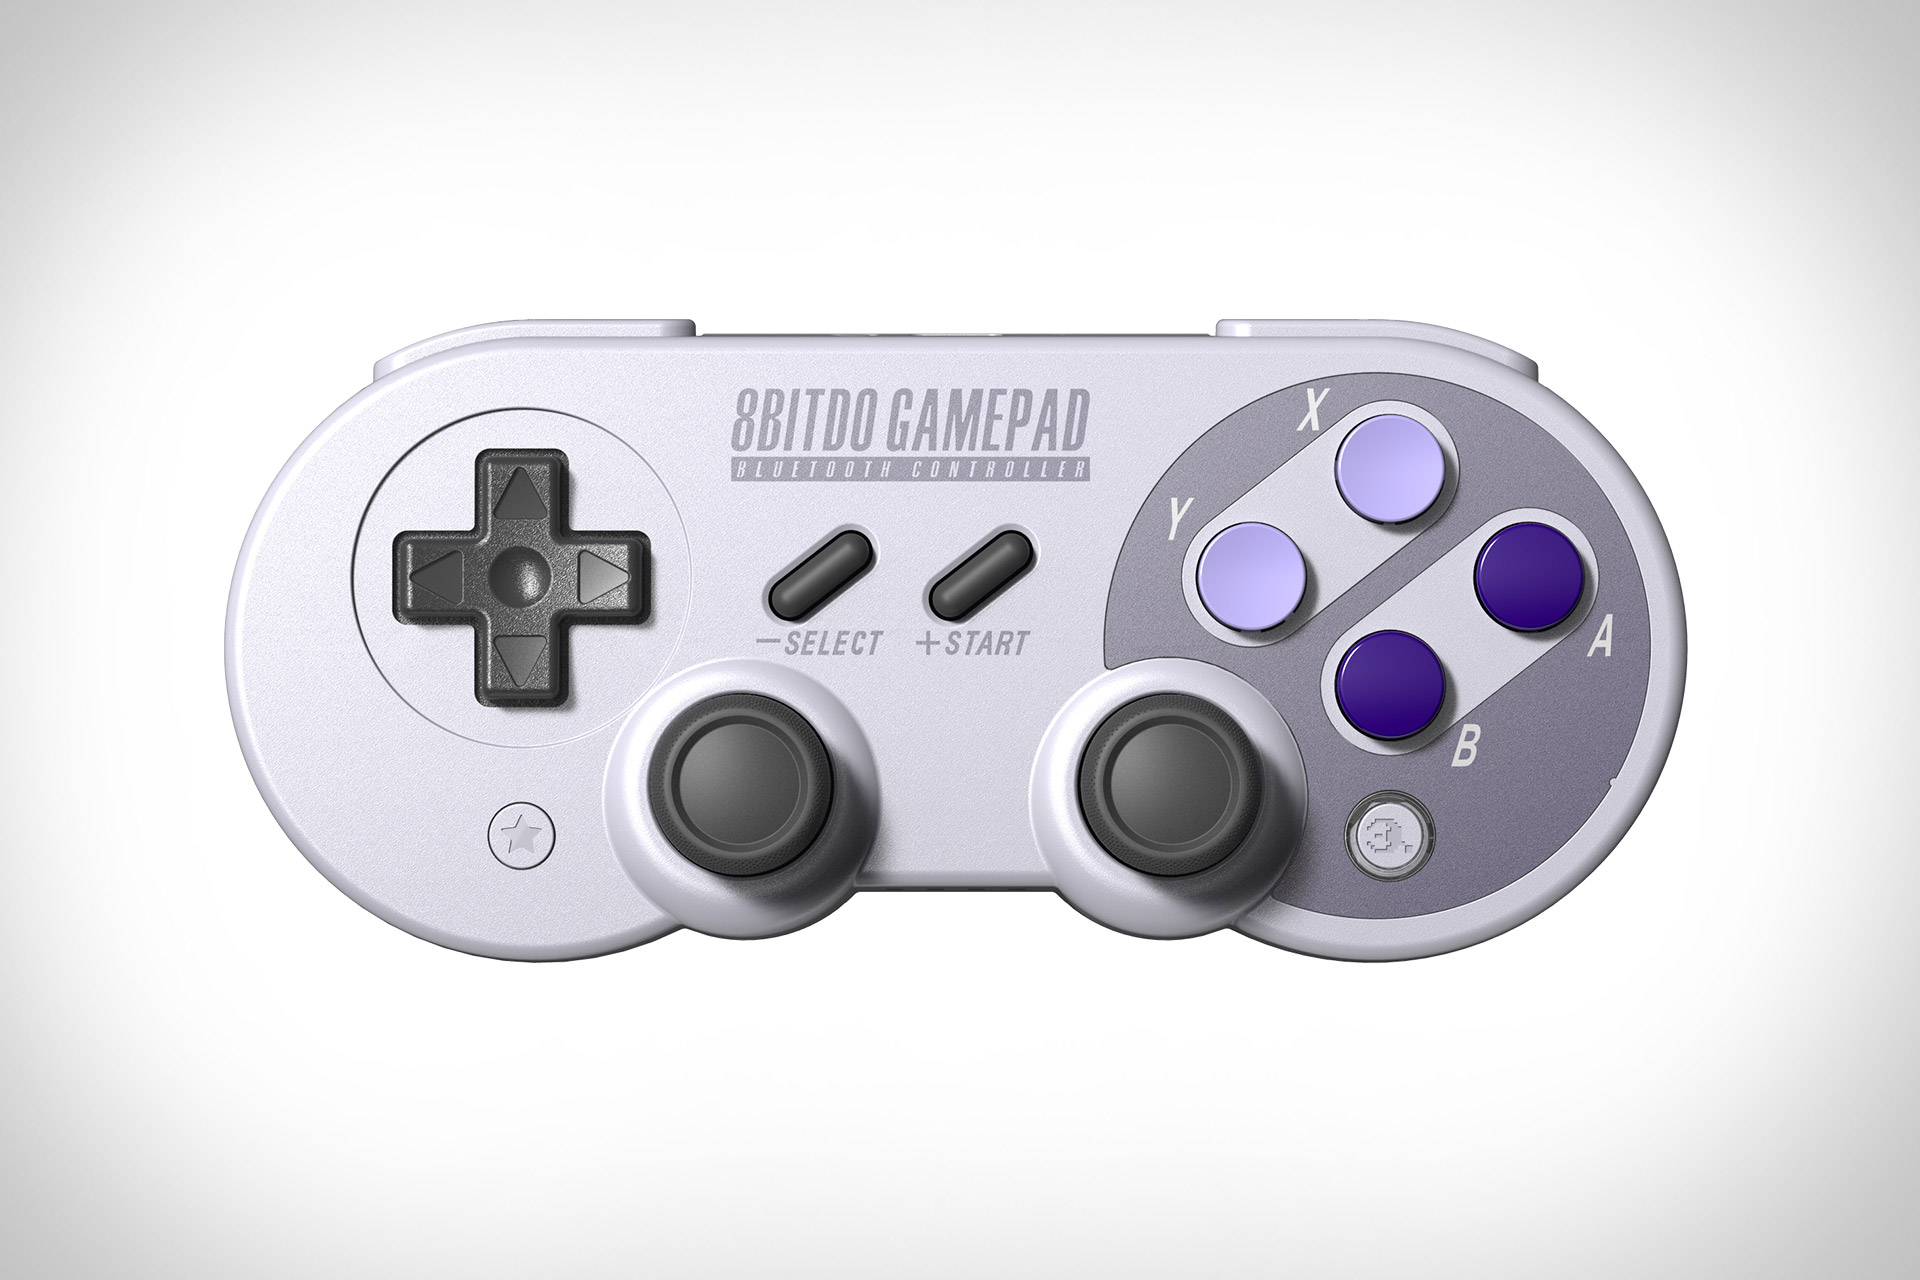 1920x1280 8bitdo Sn30 Pro Game Controller Uncrate